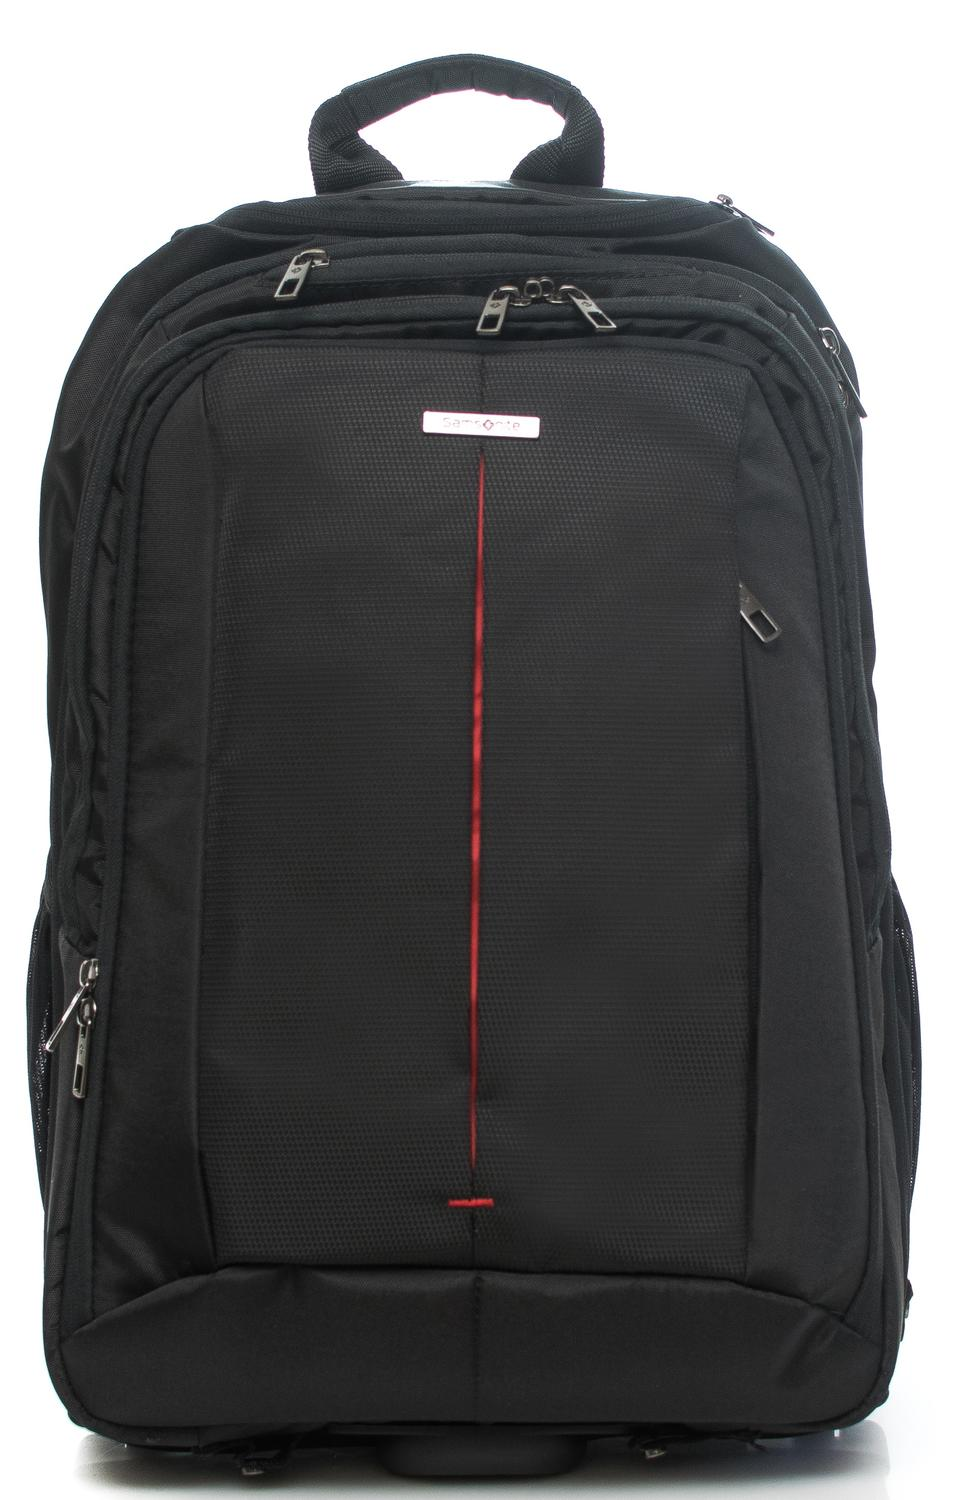 6fb5793114167b Samsonite Trolley Backpack Guardit 2.0 Line, 17.3